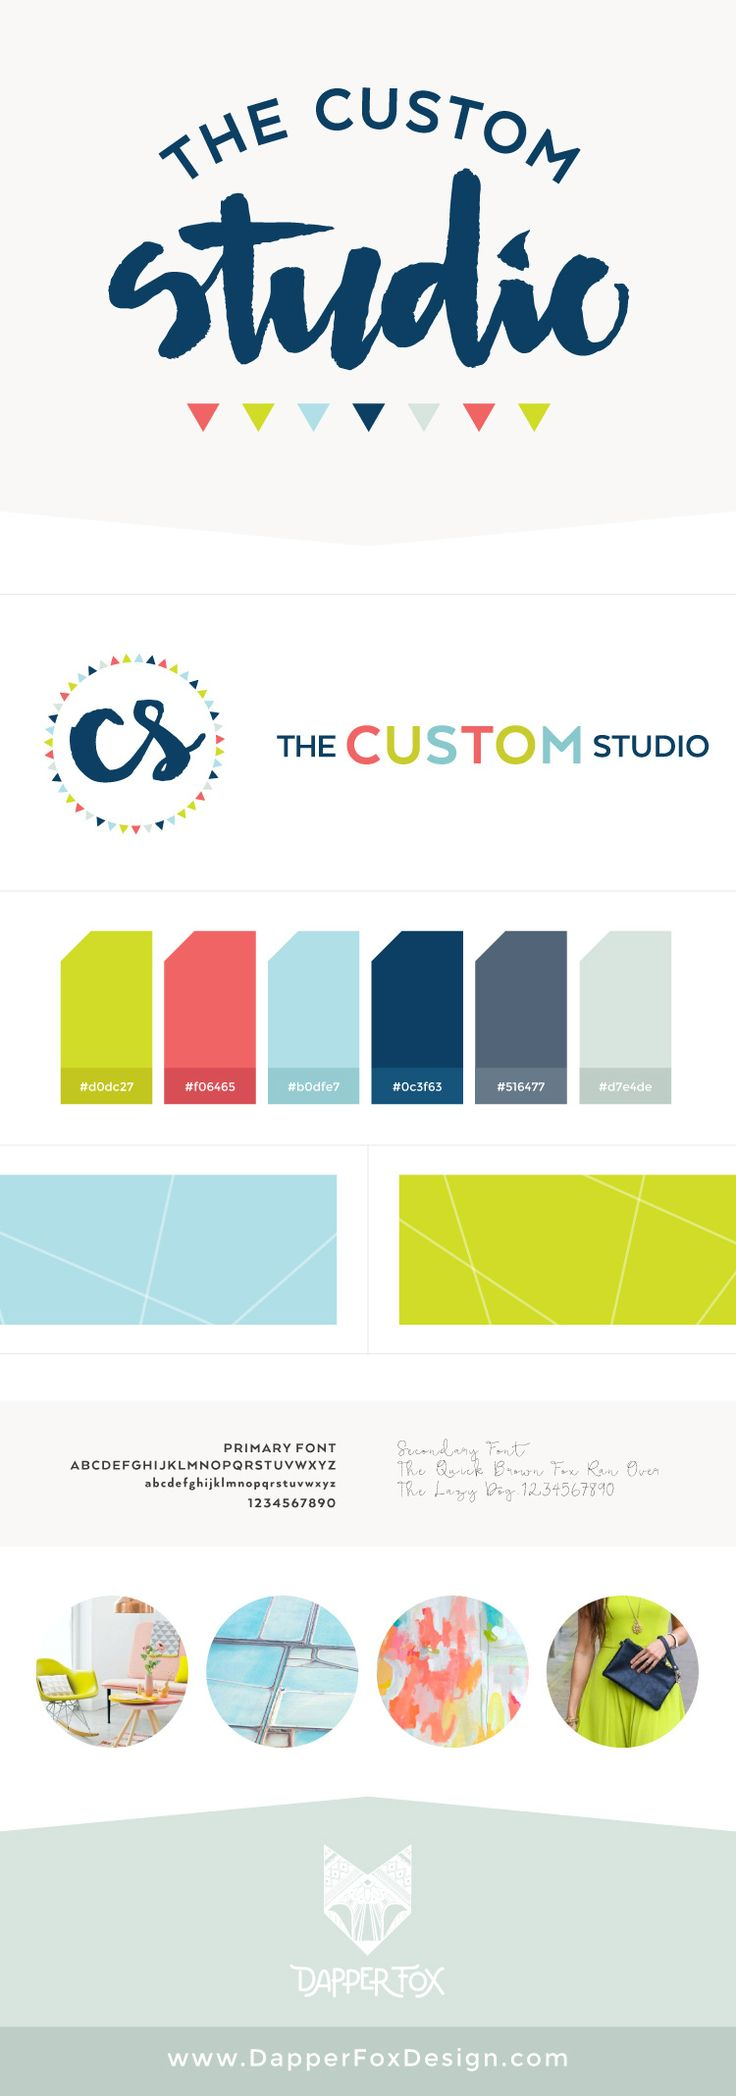 The Custom Studio Brand and Logo Board by Dapper Fox Design - Bright, Modern, Feminine, Lime Green, Navy, Coral Pink Color Palette with Hand Lettered Script Brush Font